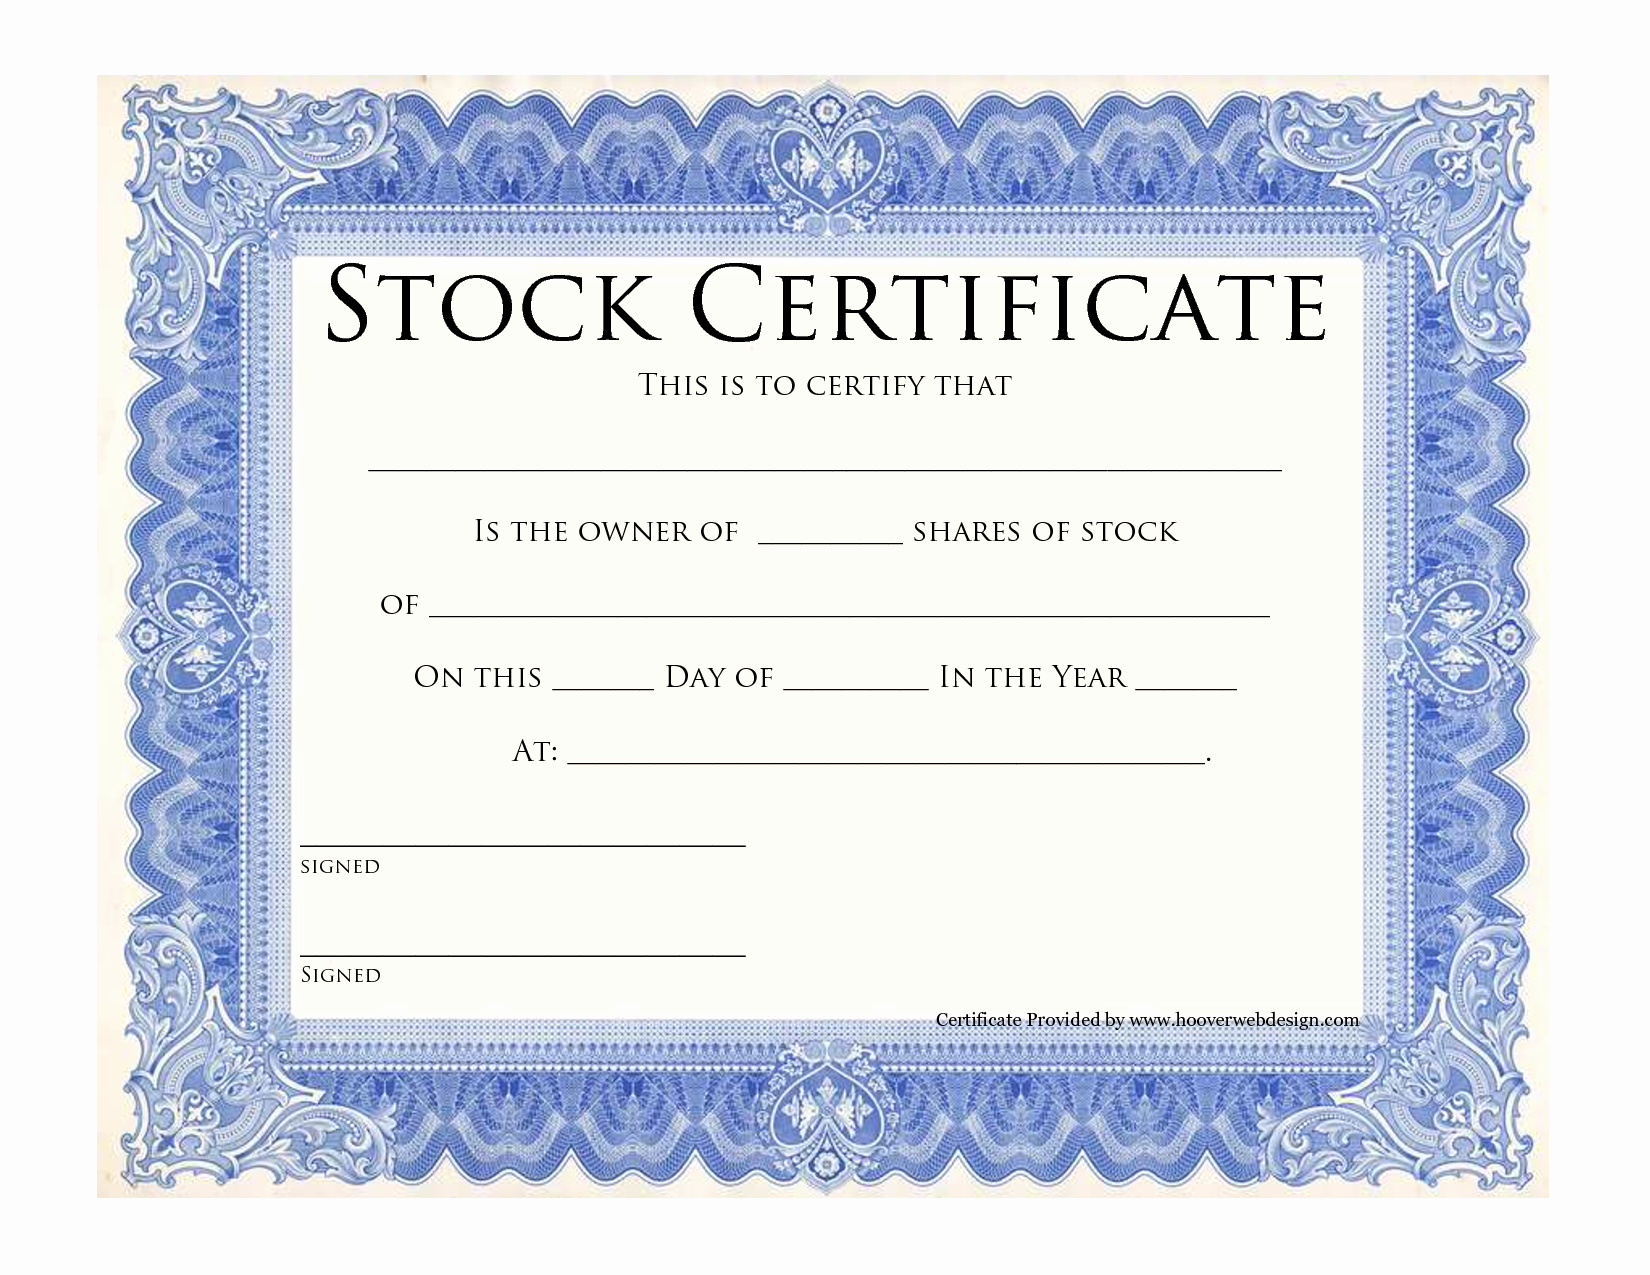 Corporate Stock Certificate Template Word Fresh Blank Stock Certificate Template